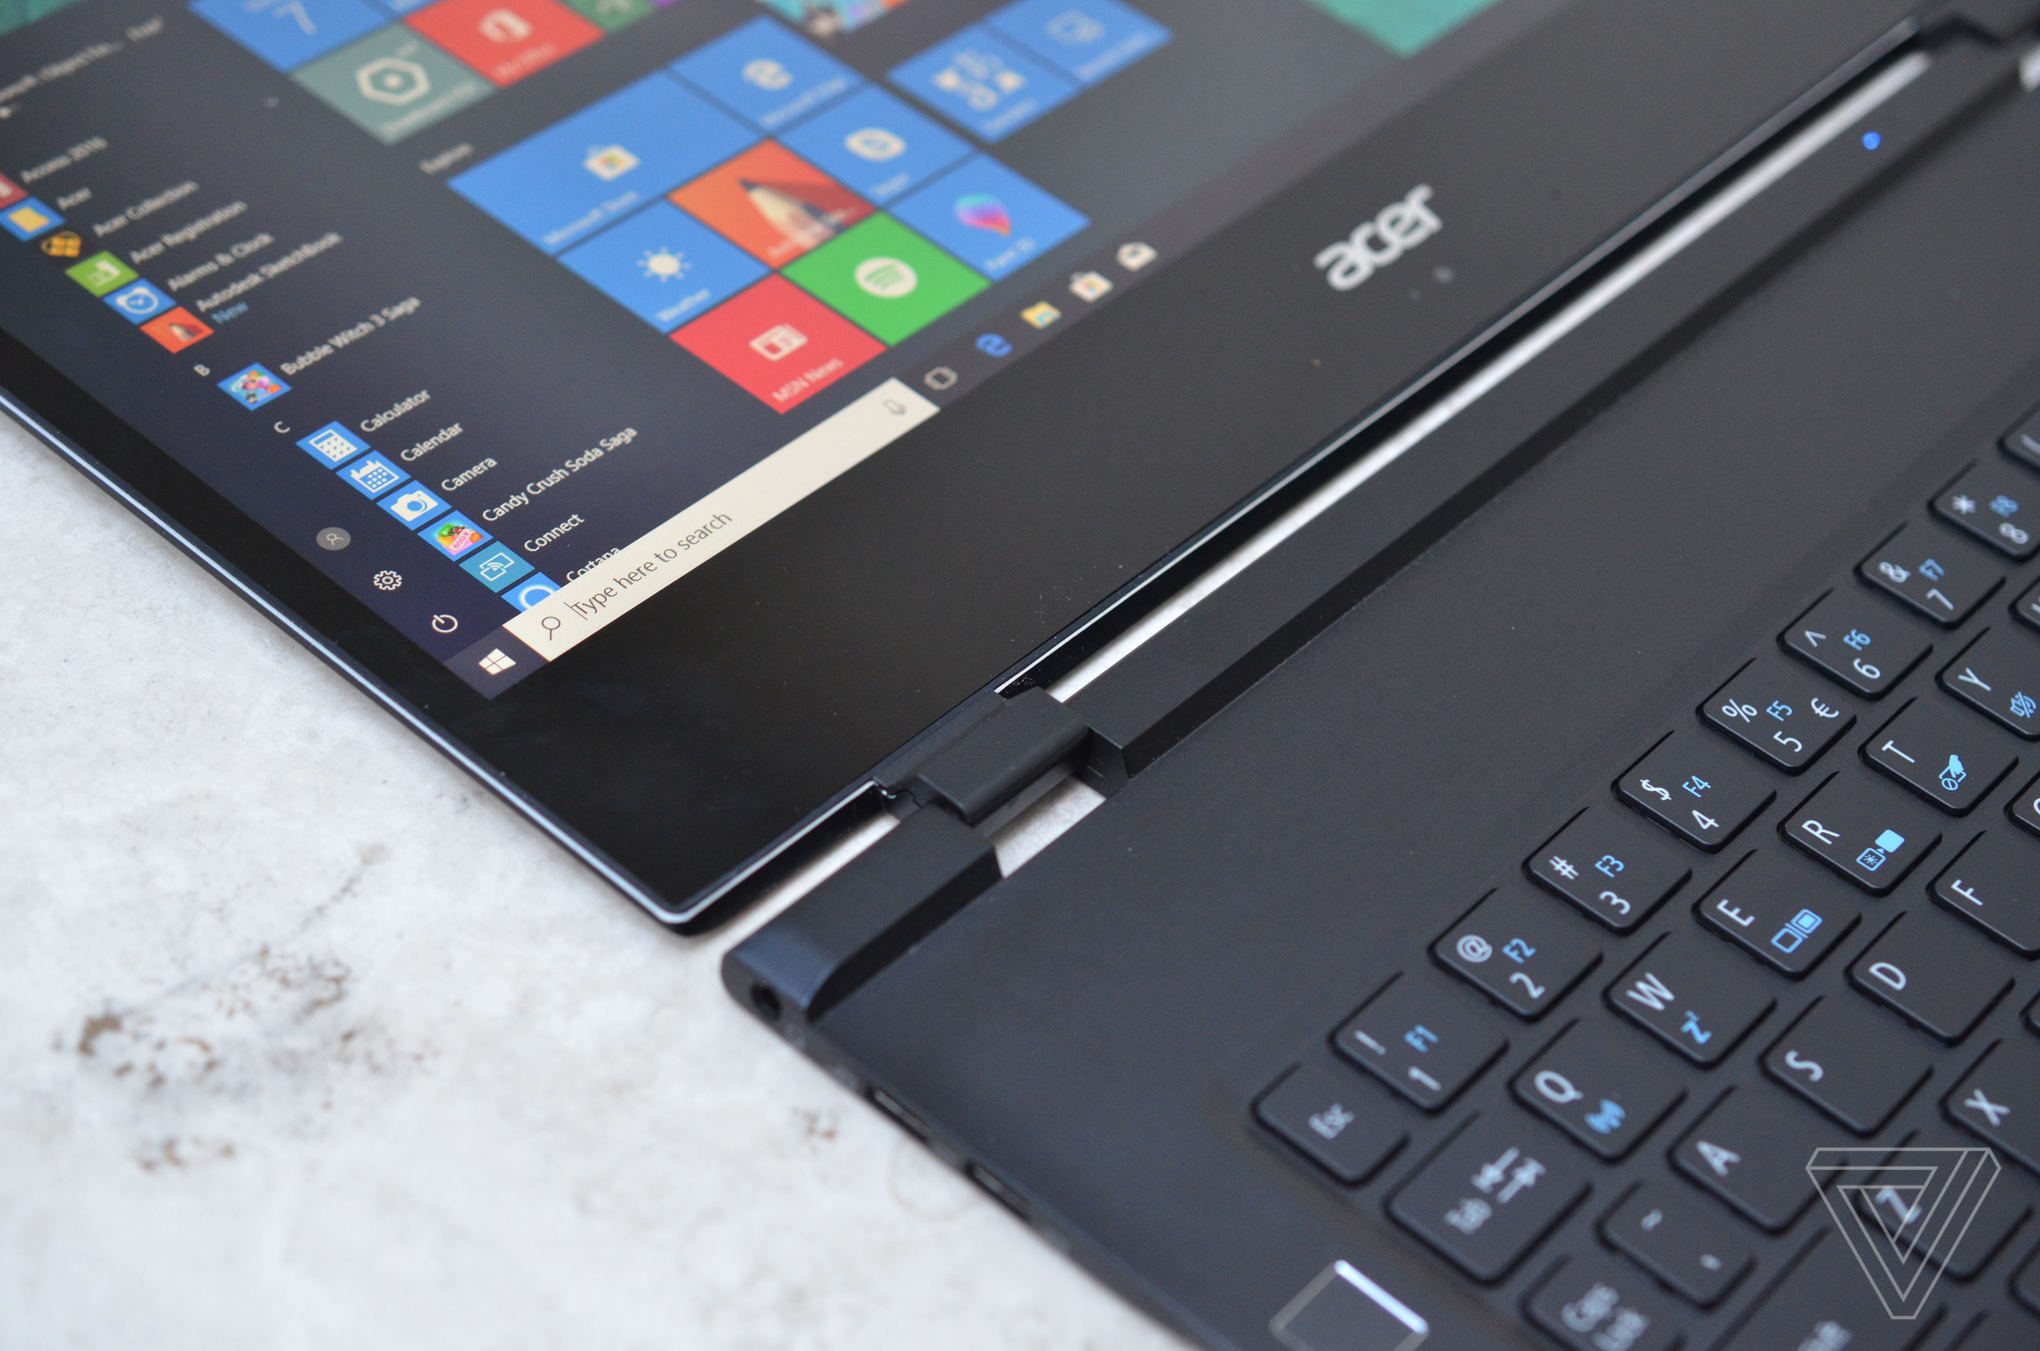 Acer's Updated Swift 7 Ultrabook Is Once Again The